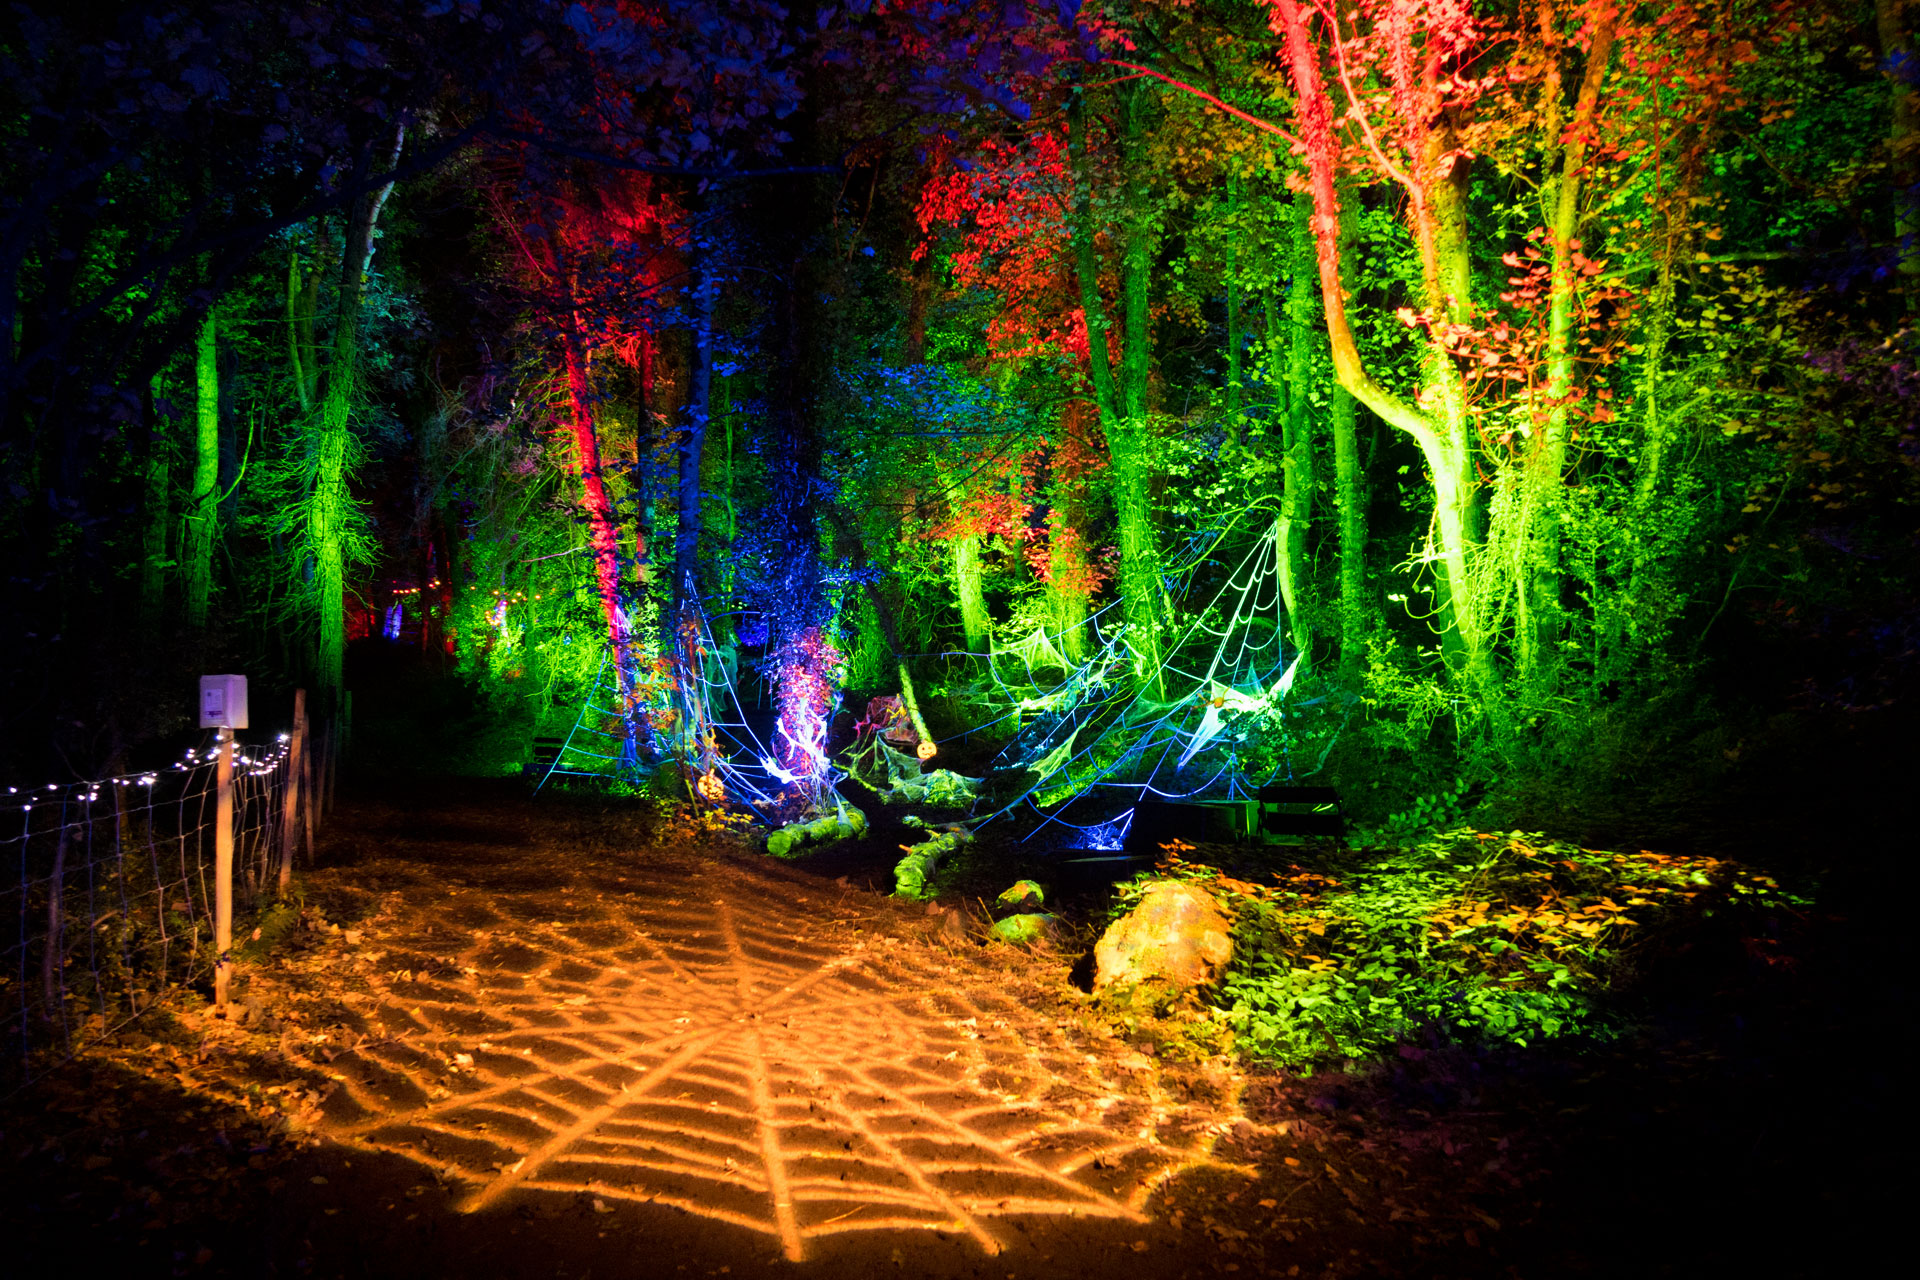 Giant spider web gobo projection, in an enchanted forest at an outdoor Halloween lighting event in North Wales. With up-lit trees, illuminated in green, blue and red, using weatherproof LED battens and flood lights.